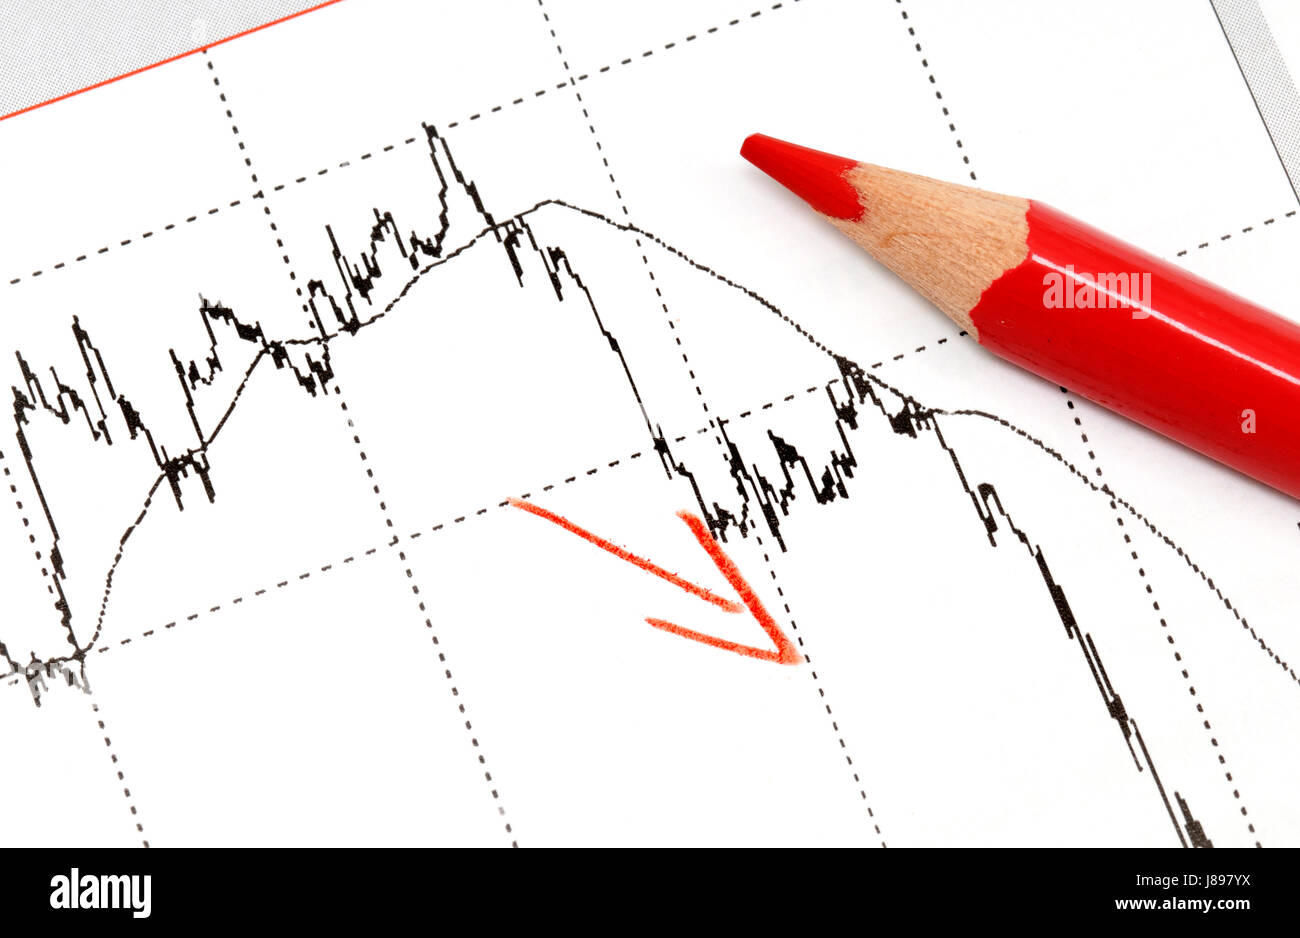 exchange rates in graphical display with colored pencil - Stock Image